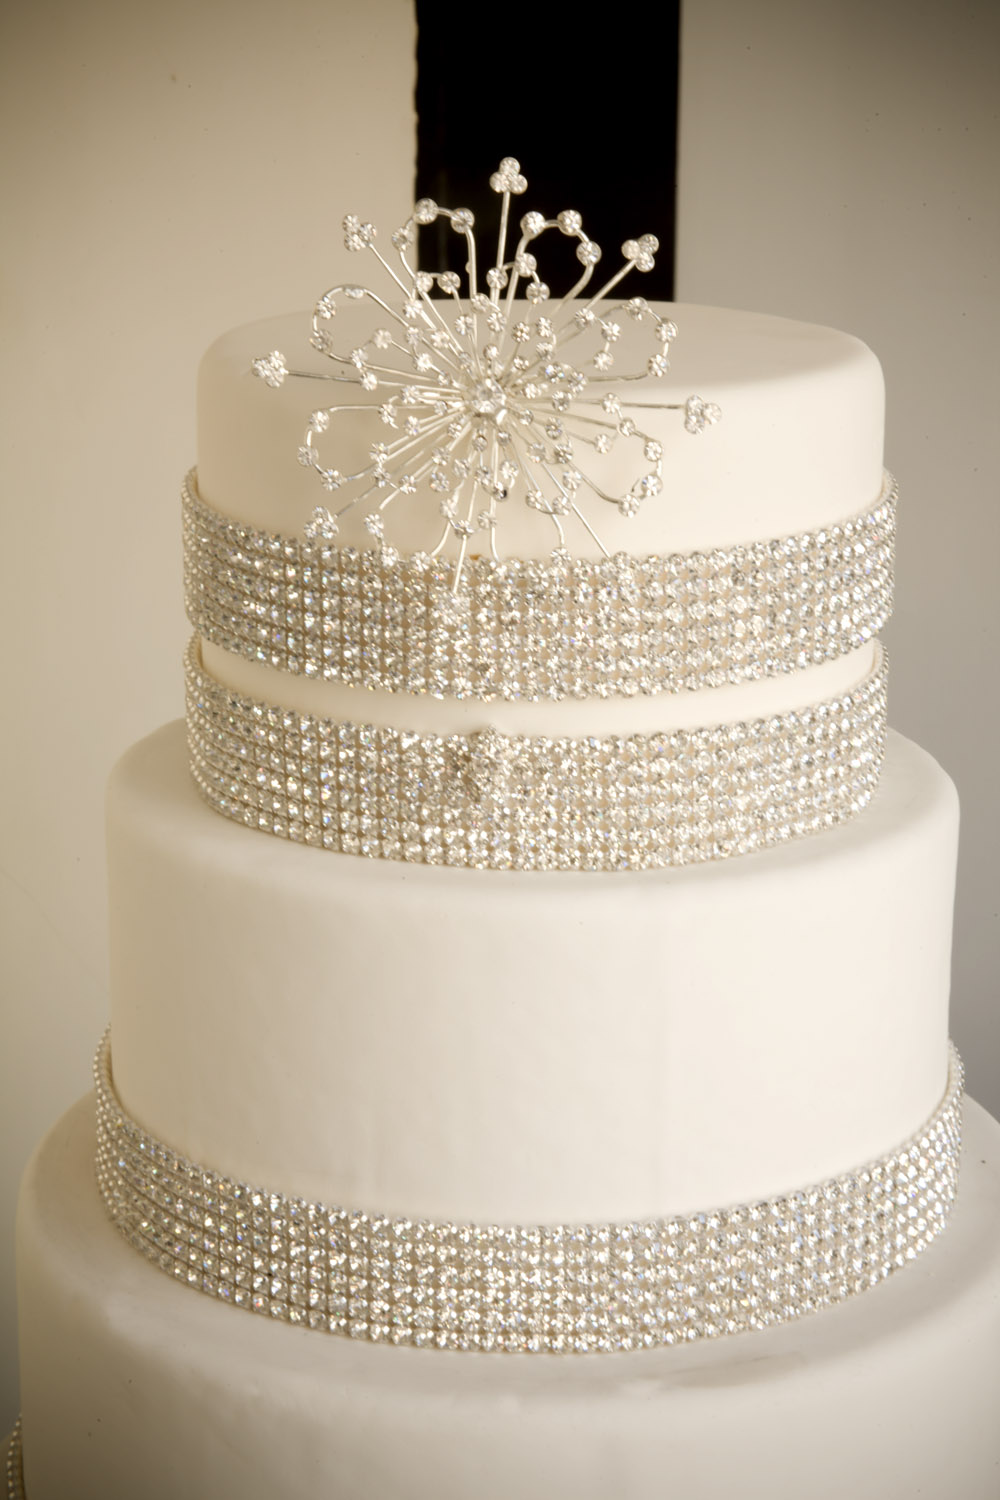 A simple cake crystal decorations more diy bling for Bling decor